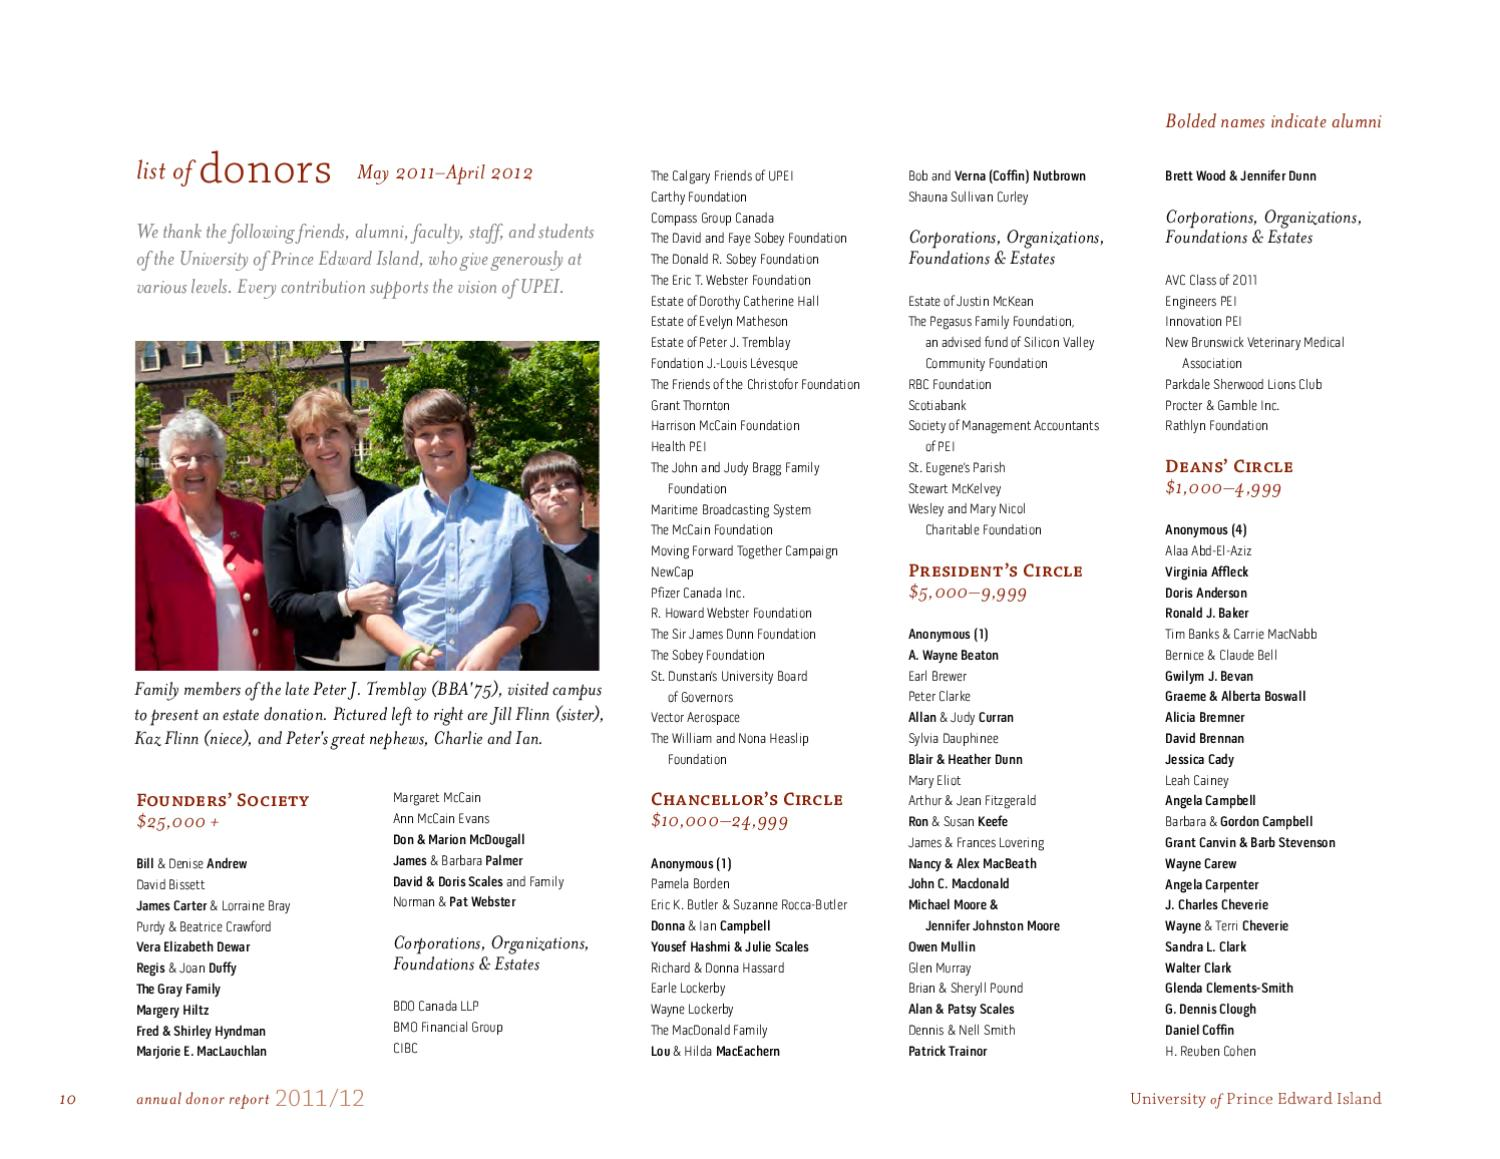 Upei Annual Donor Report 2011 12 By Upei Issuu